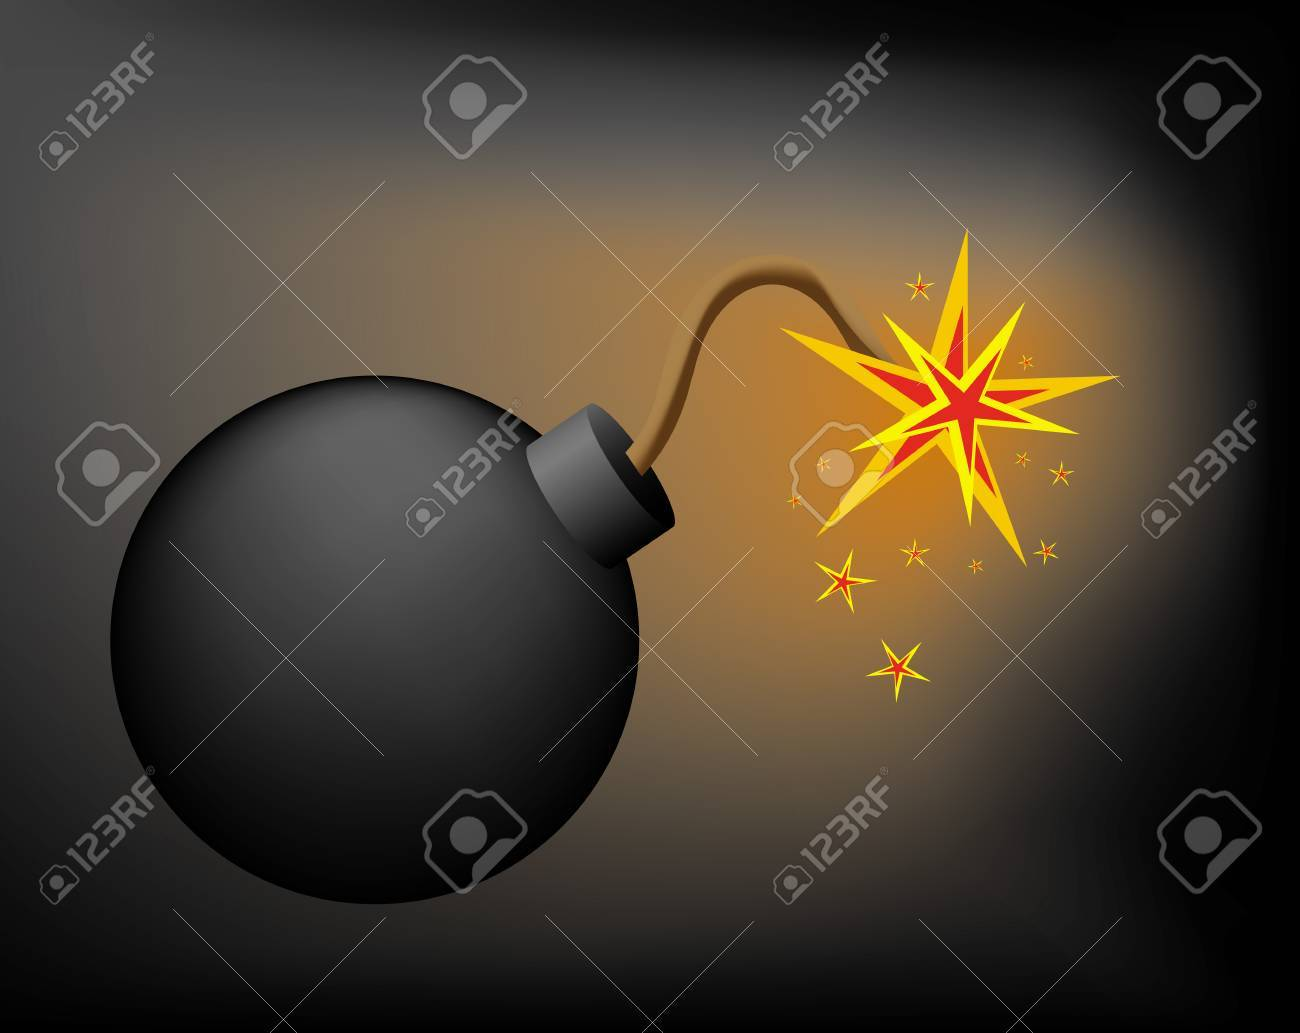 Bomb before explosion in darkness Stock Vector - 2444346